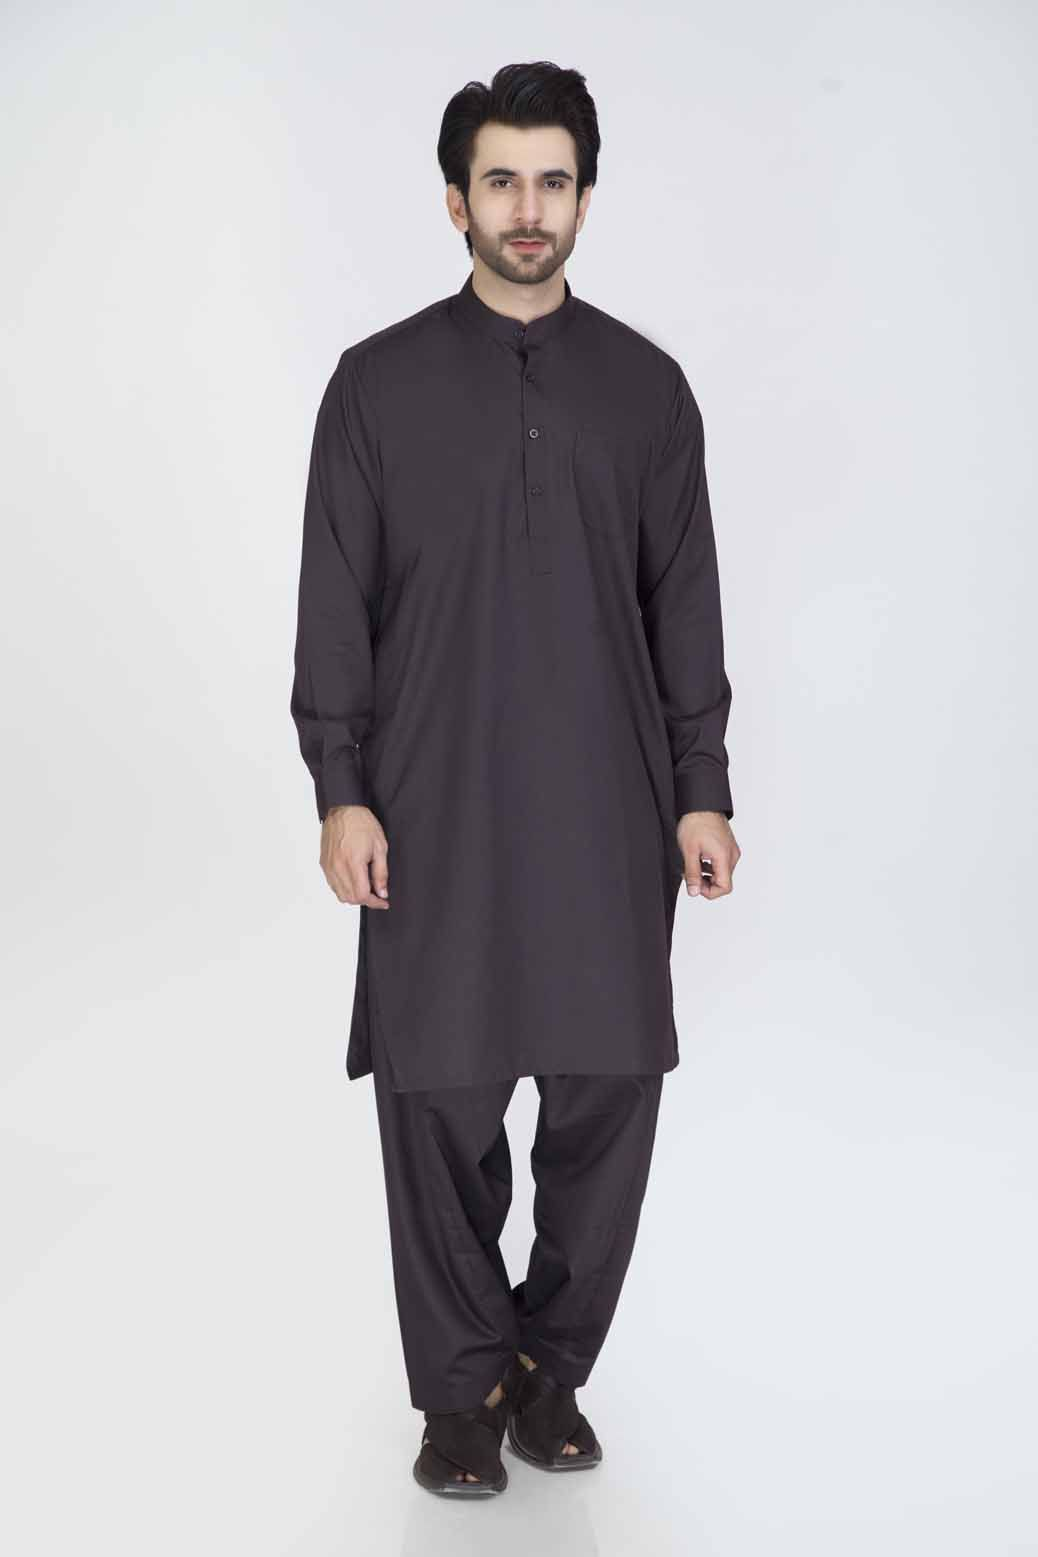 Regular Fit Kurta & Shalwar GSSRB012